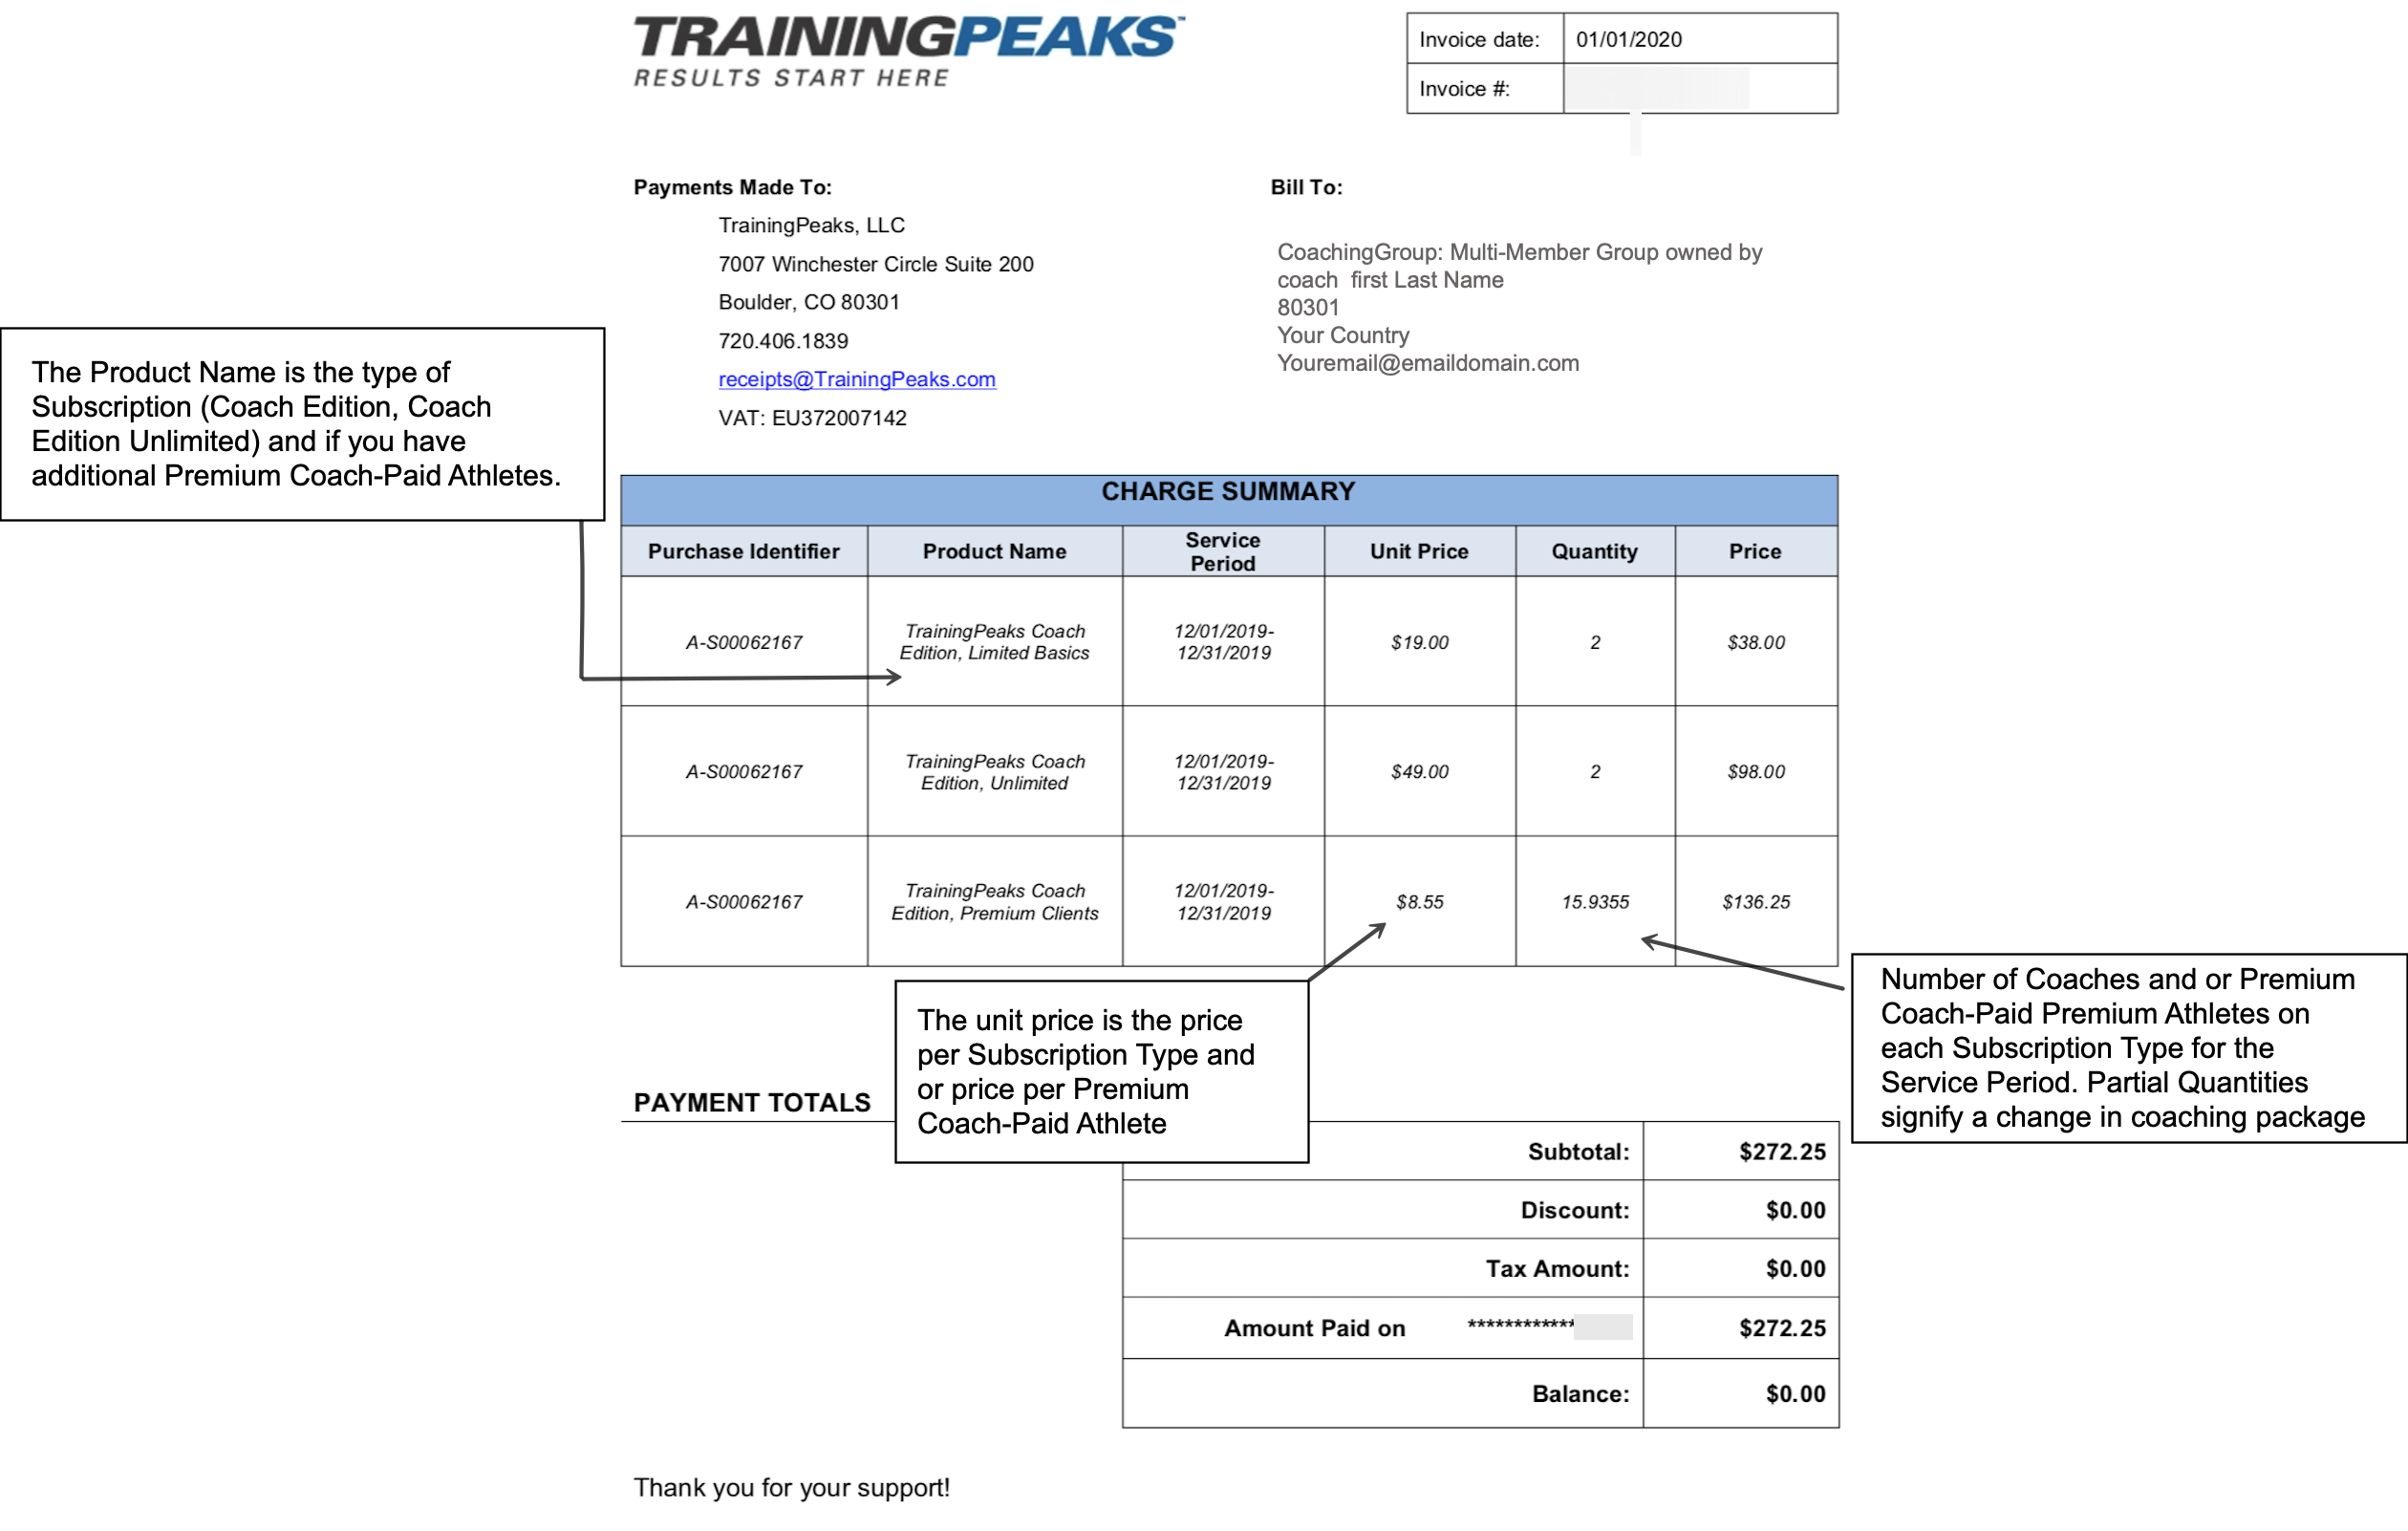 TrainingPeaks_Invoice_Receipt.png